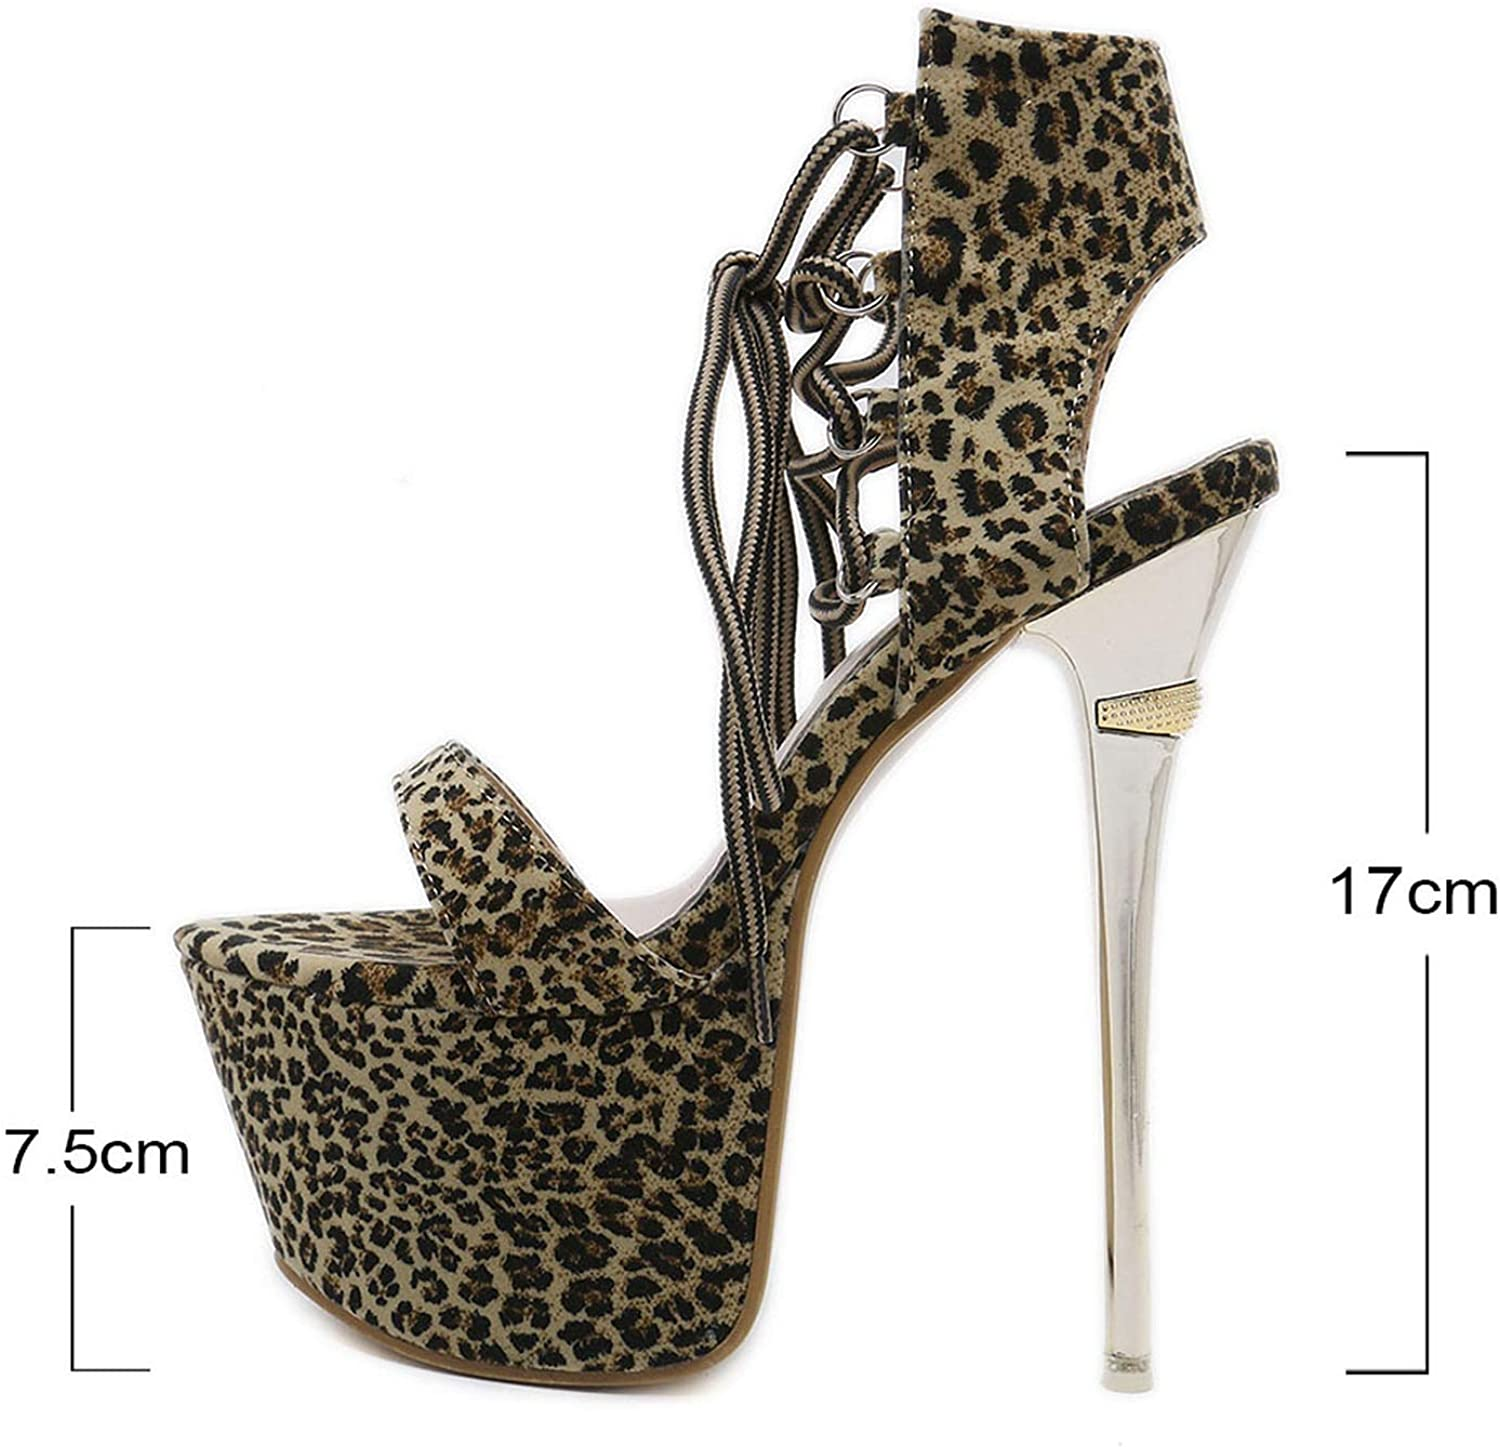 Betterluse Flats Sandals Thin High Heels shoes Leopard Printed Open Toe Party shoes Cross Tied Wedding shoes